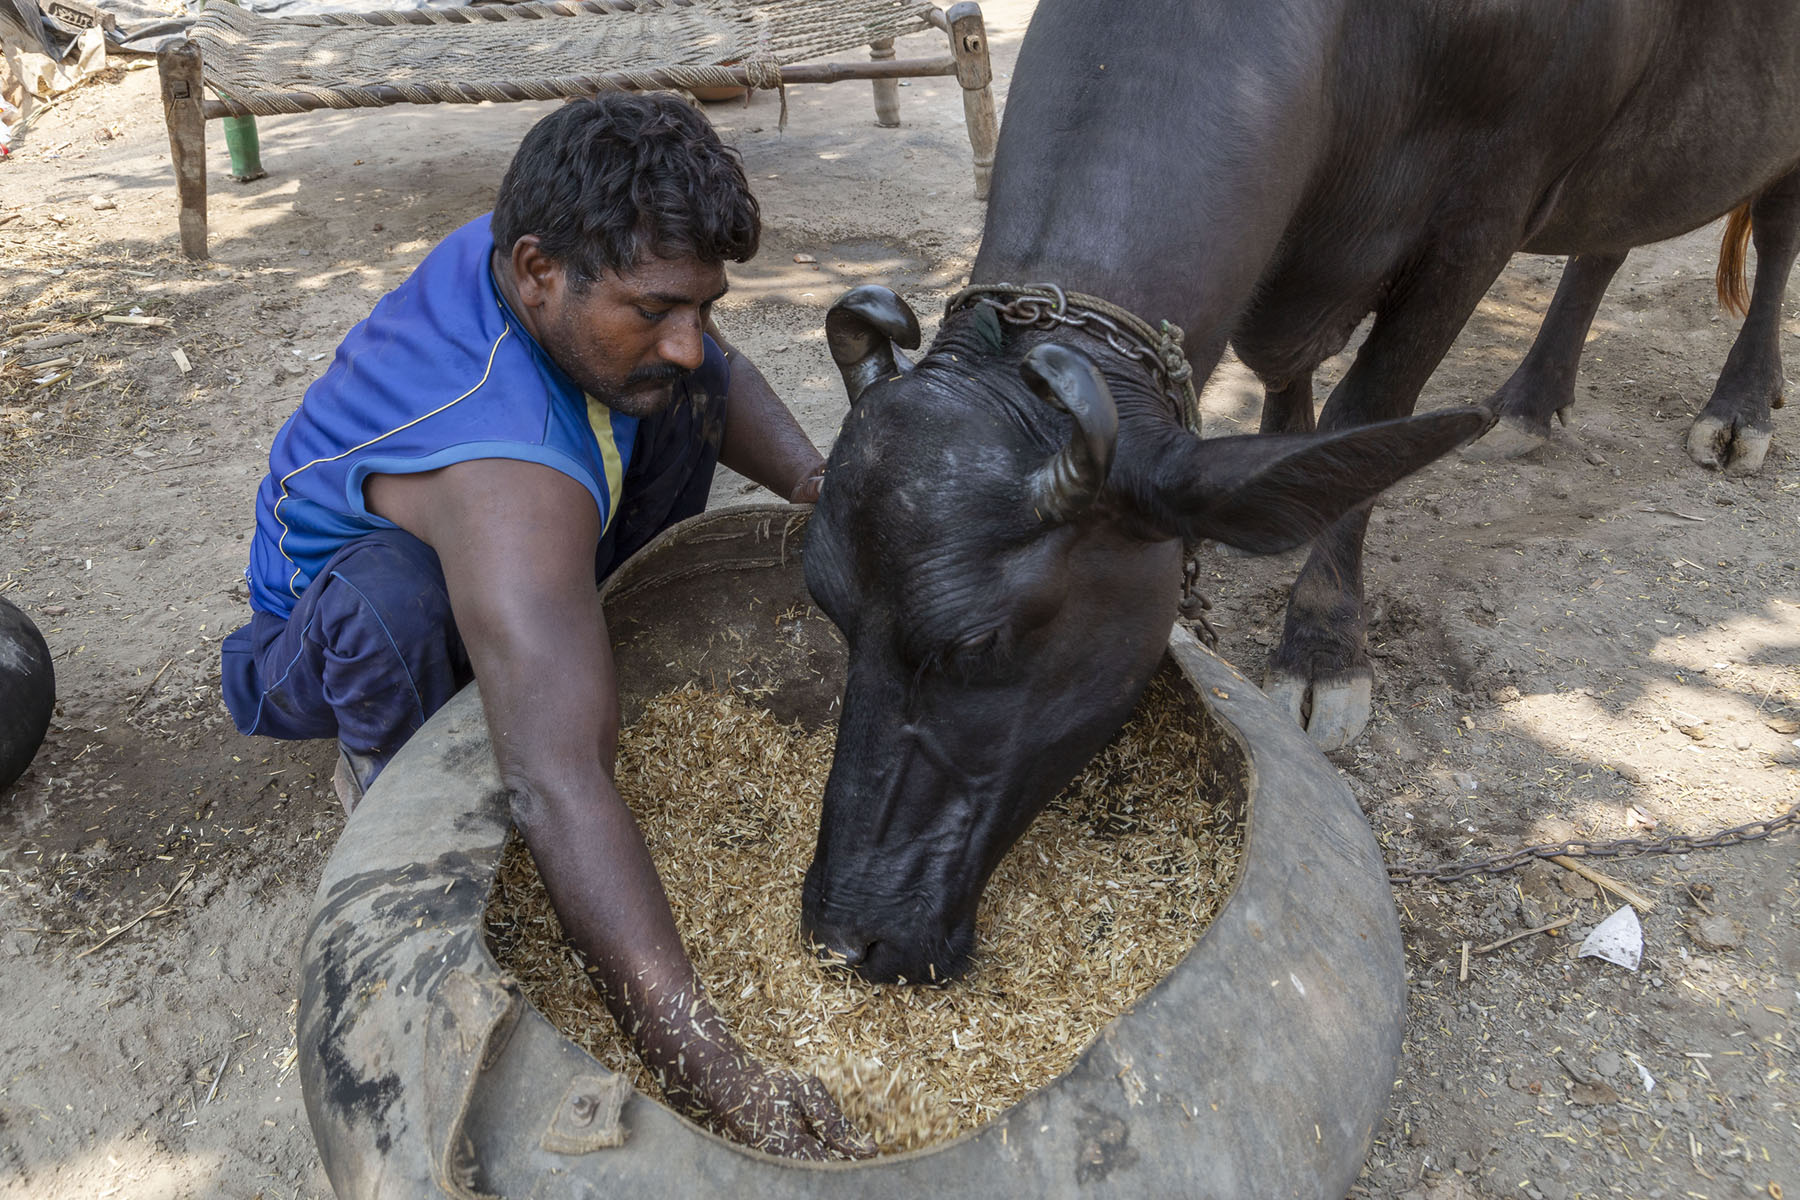 Ramotar in a navy blue sleeveless T-shirt and matching pants is squatting on the ground. His right hand is buried in a large vessel of cattle fodder. A buffalo is dipping its head into the vessel and eating the fodder.